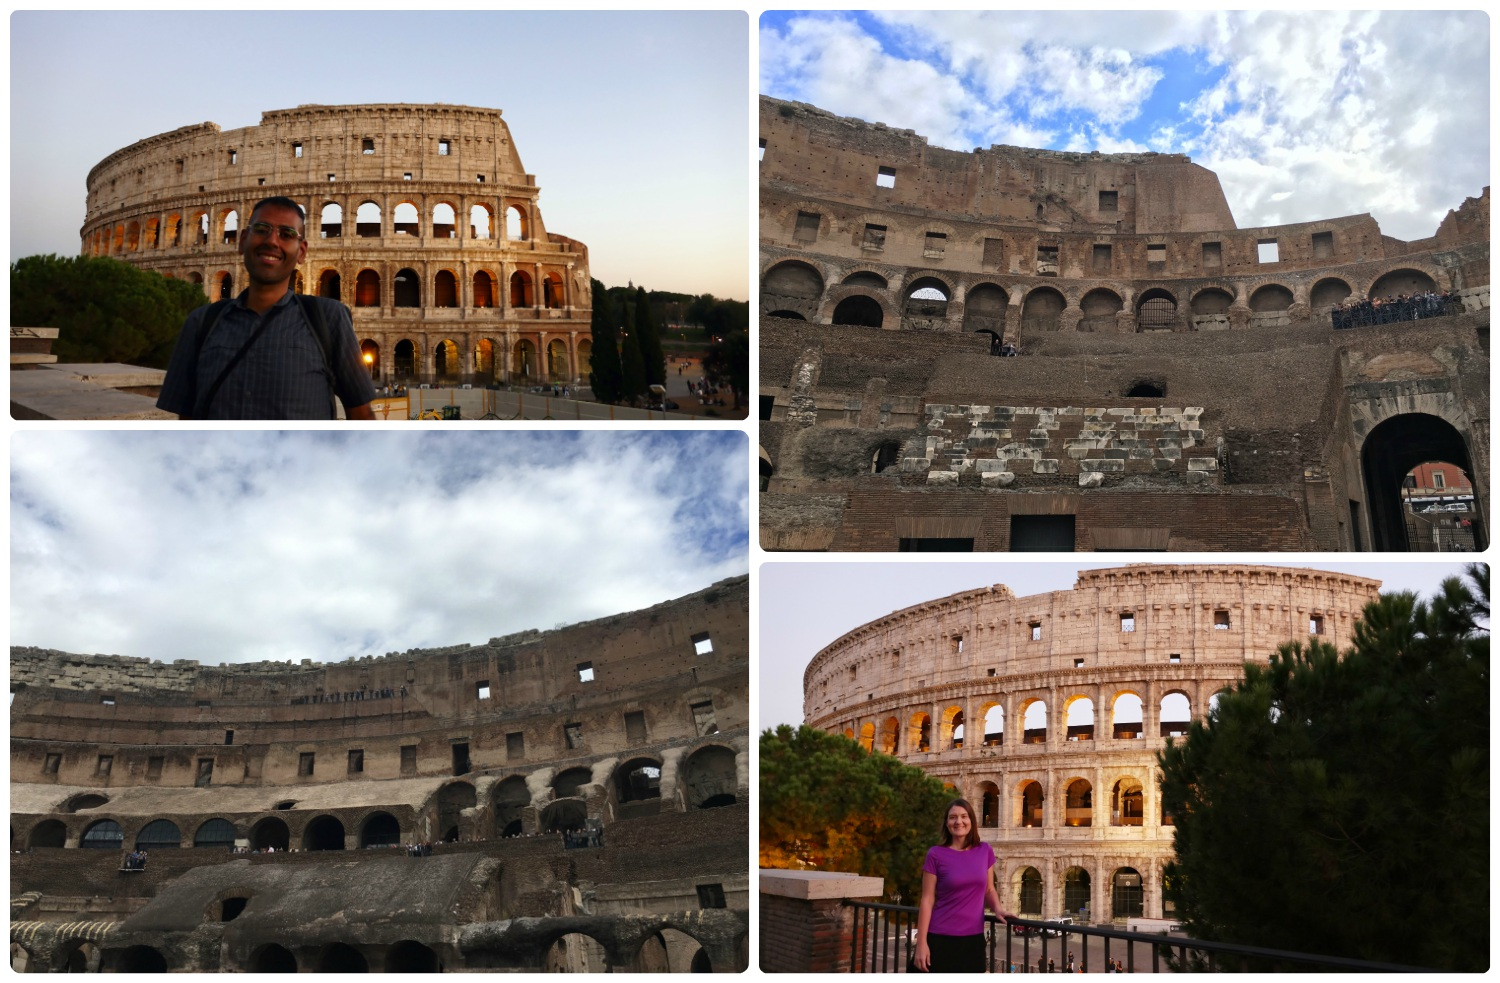 Inside and out, our experience of the Roman Colosseum was breathtaking and something we won't forget anytime soon!